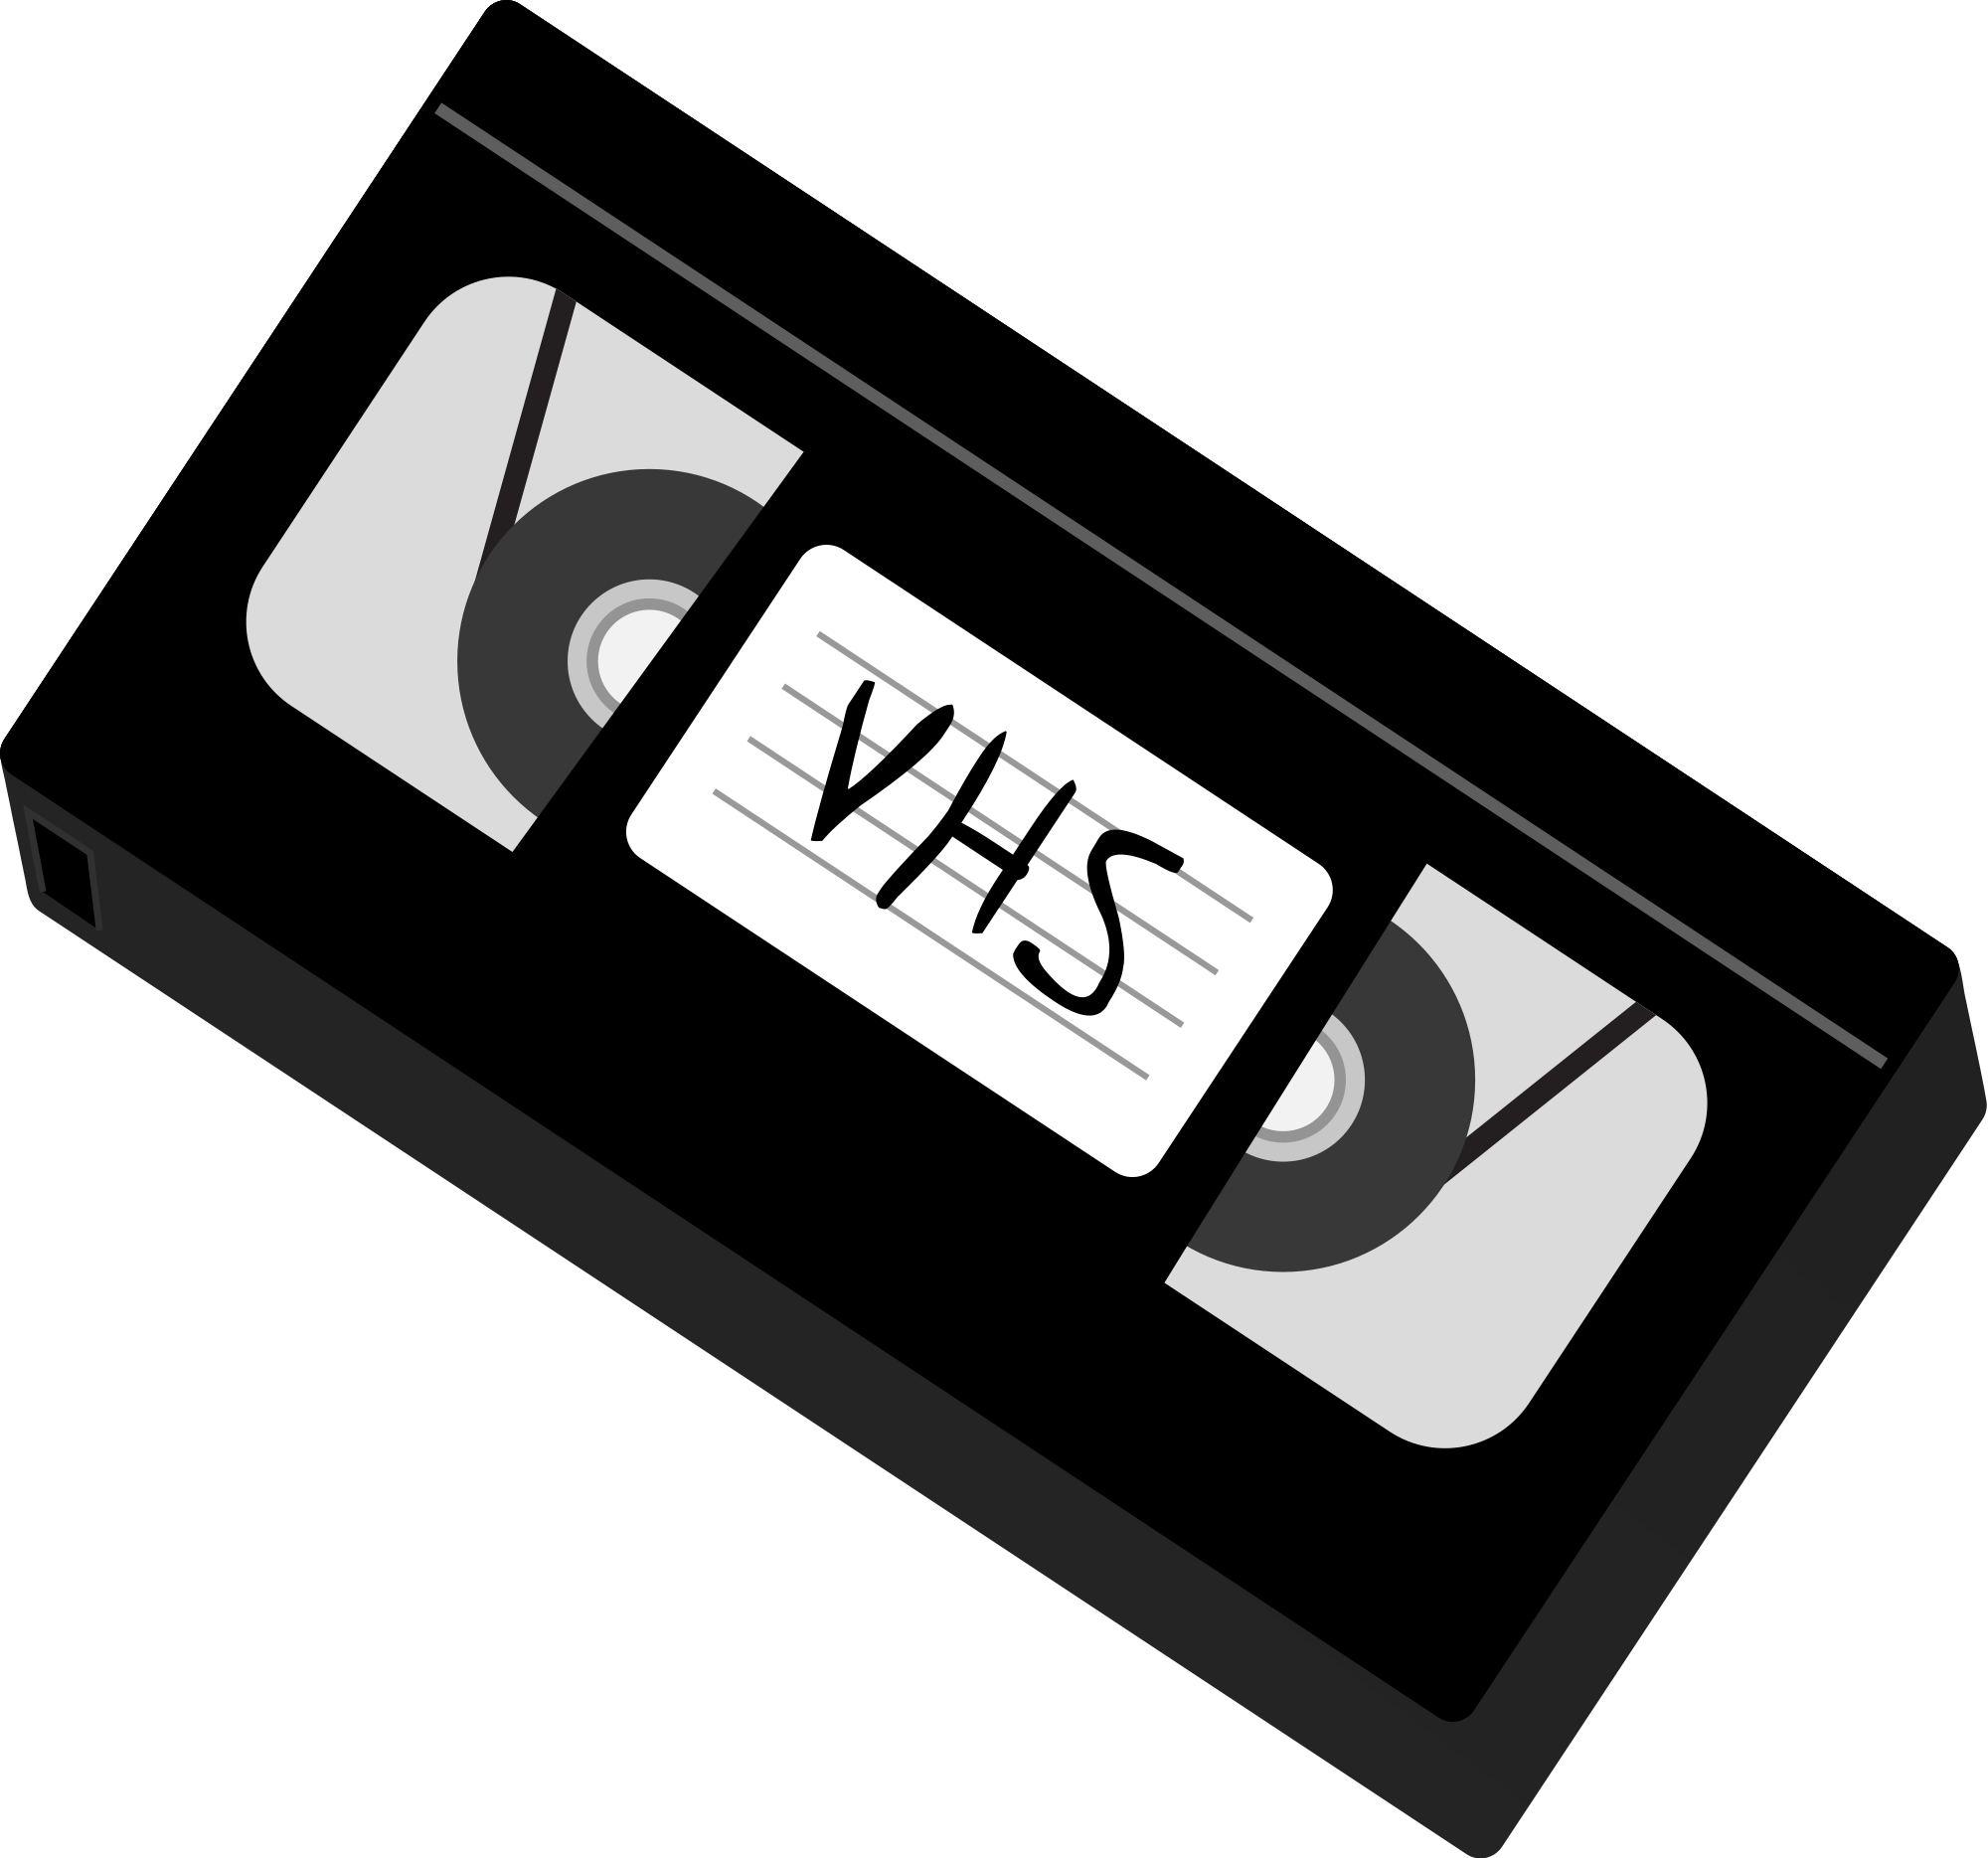 Vhs Tape PNG - 54658